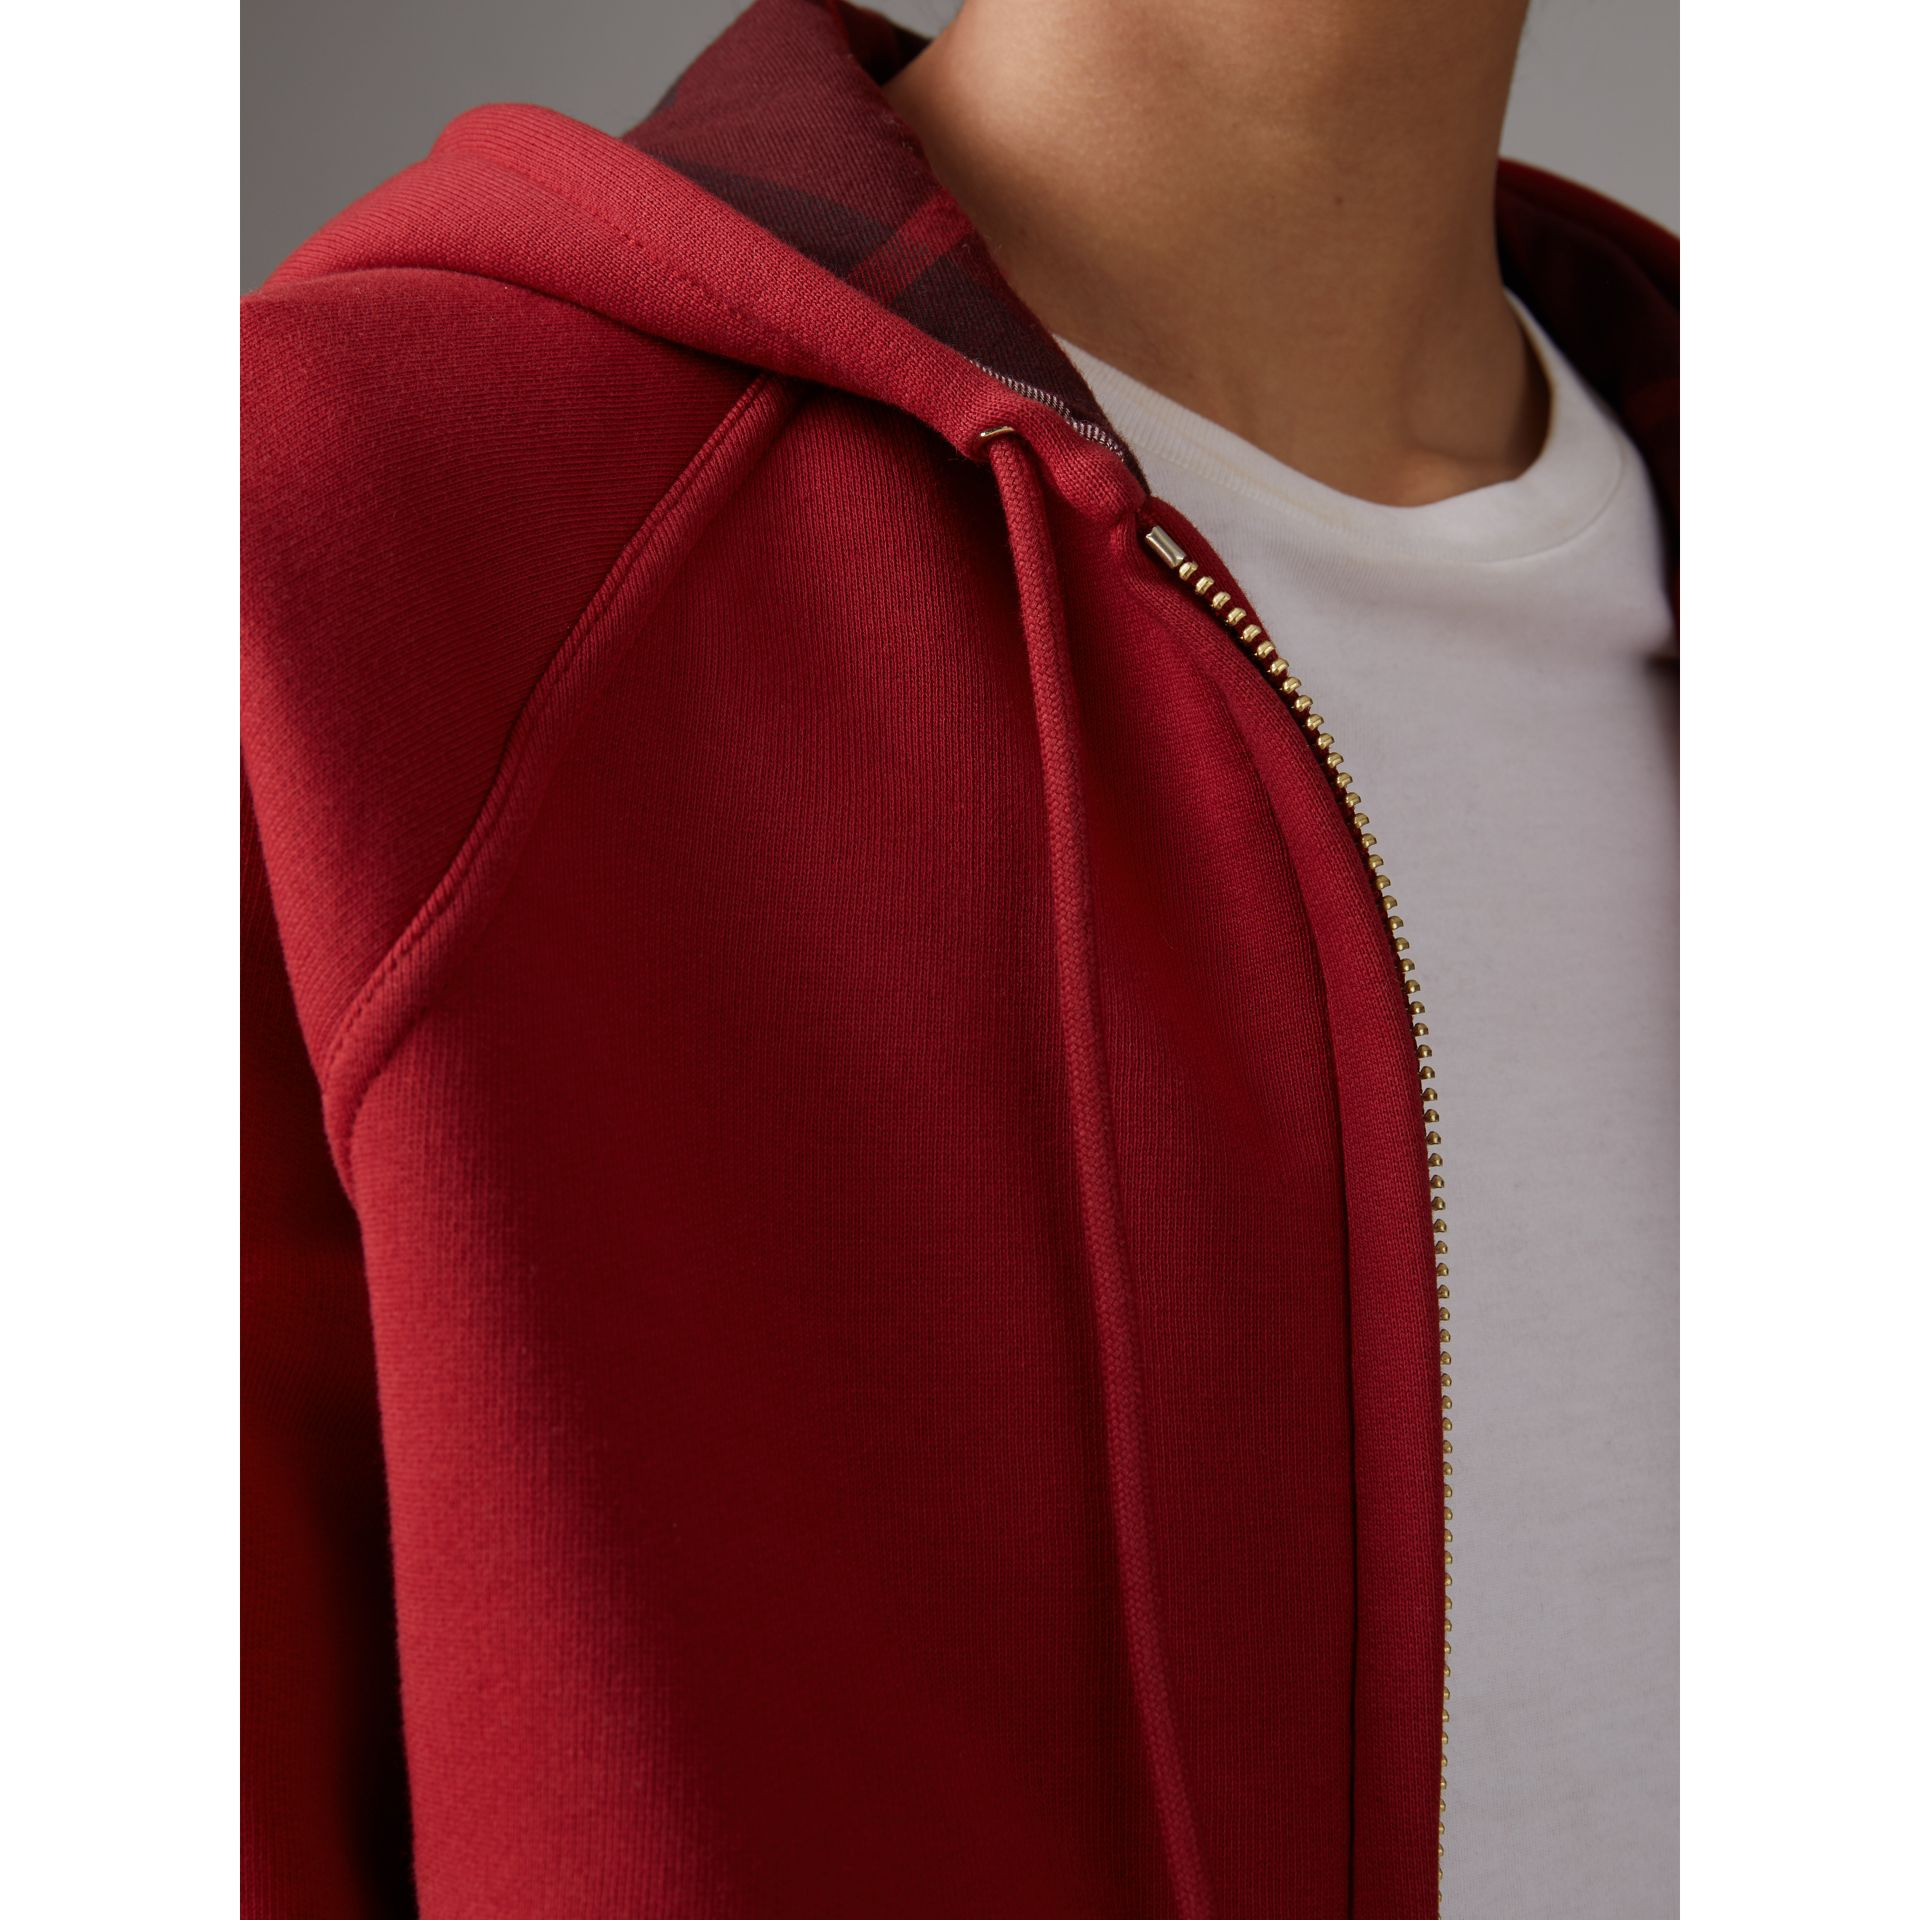 Hooded Zip-front Cotton Blend Sweatshirt in Parade Red - Women | Burberry United Kingdom - gallery image 1